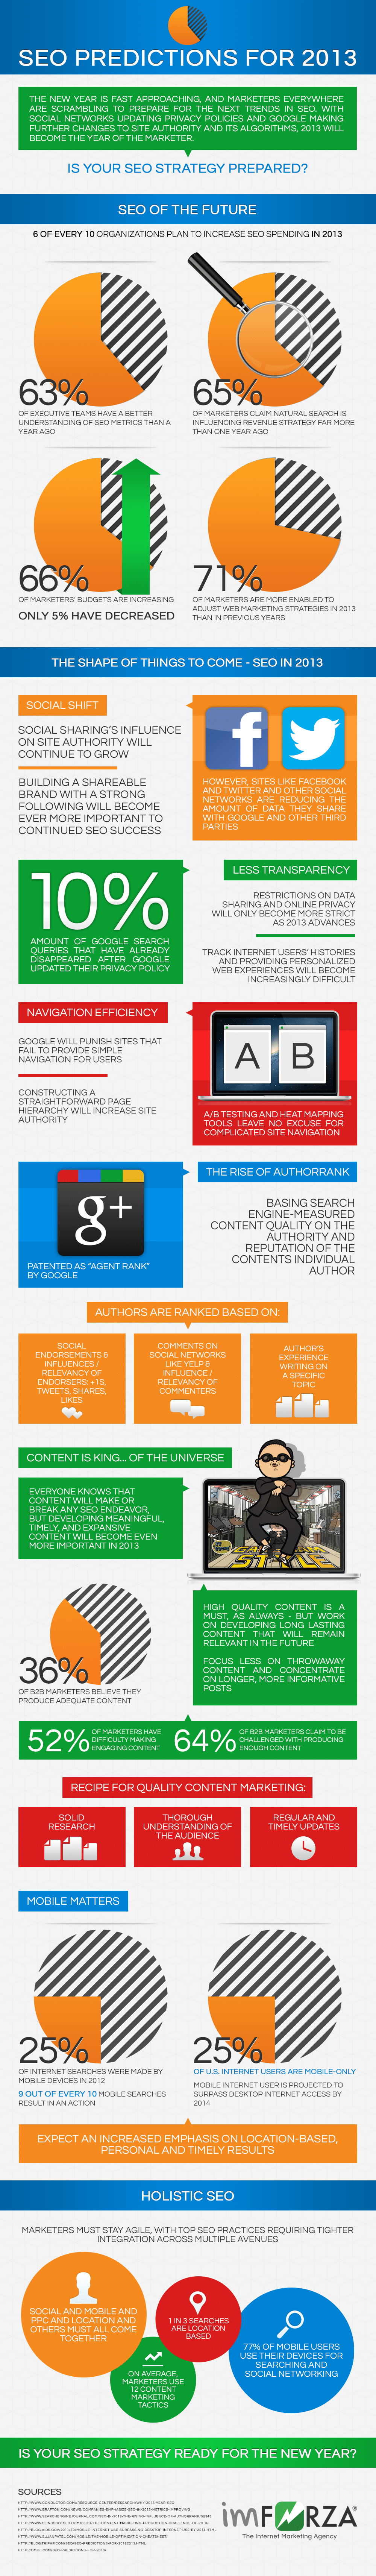 SEO Predictions for 2013 - Infographic